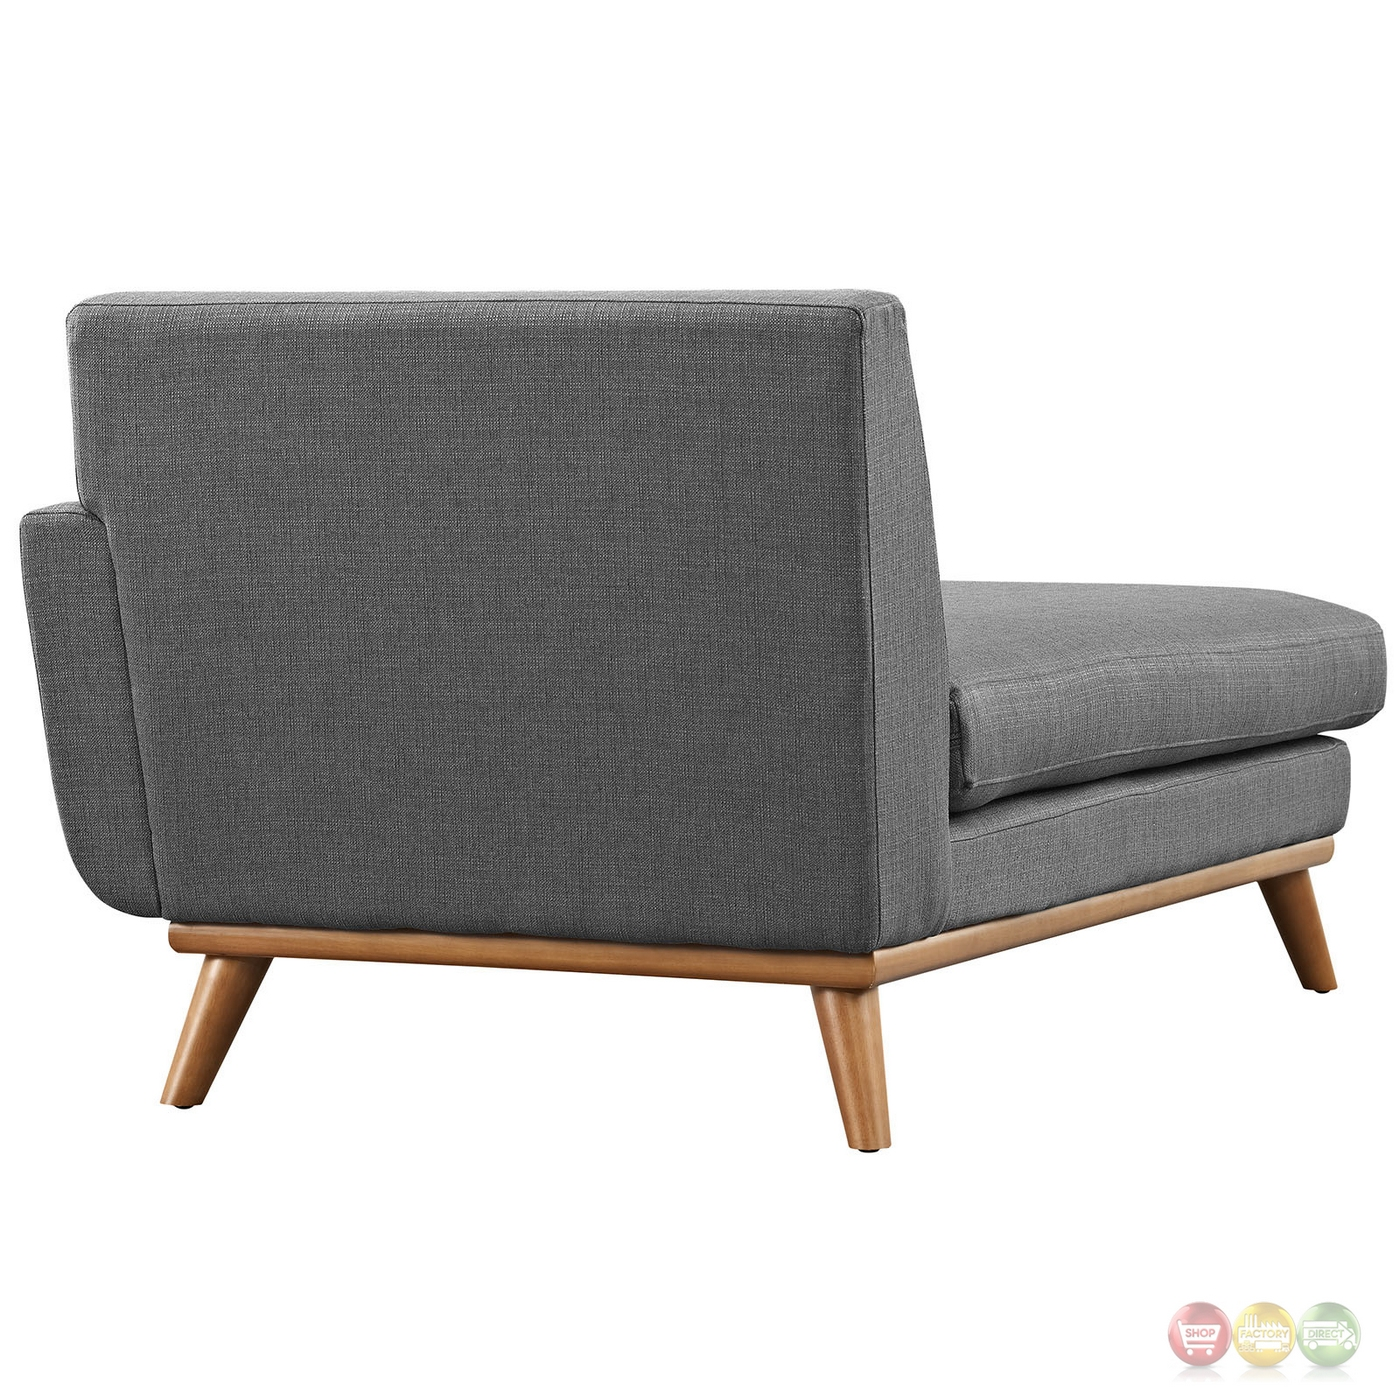 Engage modern button tufted upholstered right arm chaise gray for Button tufted chaise